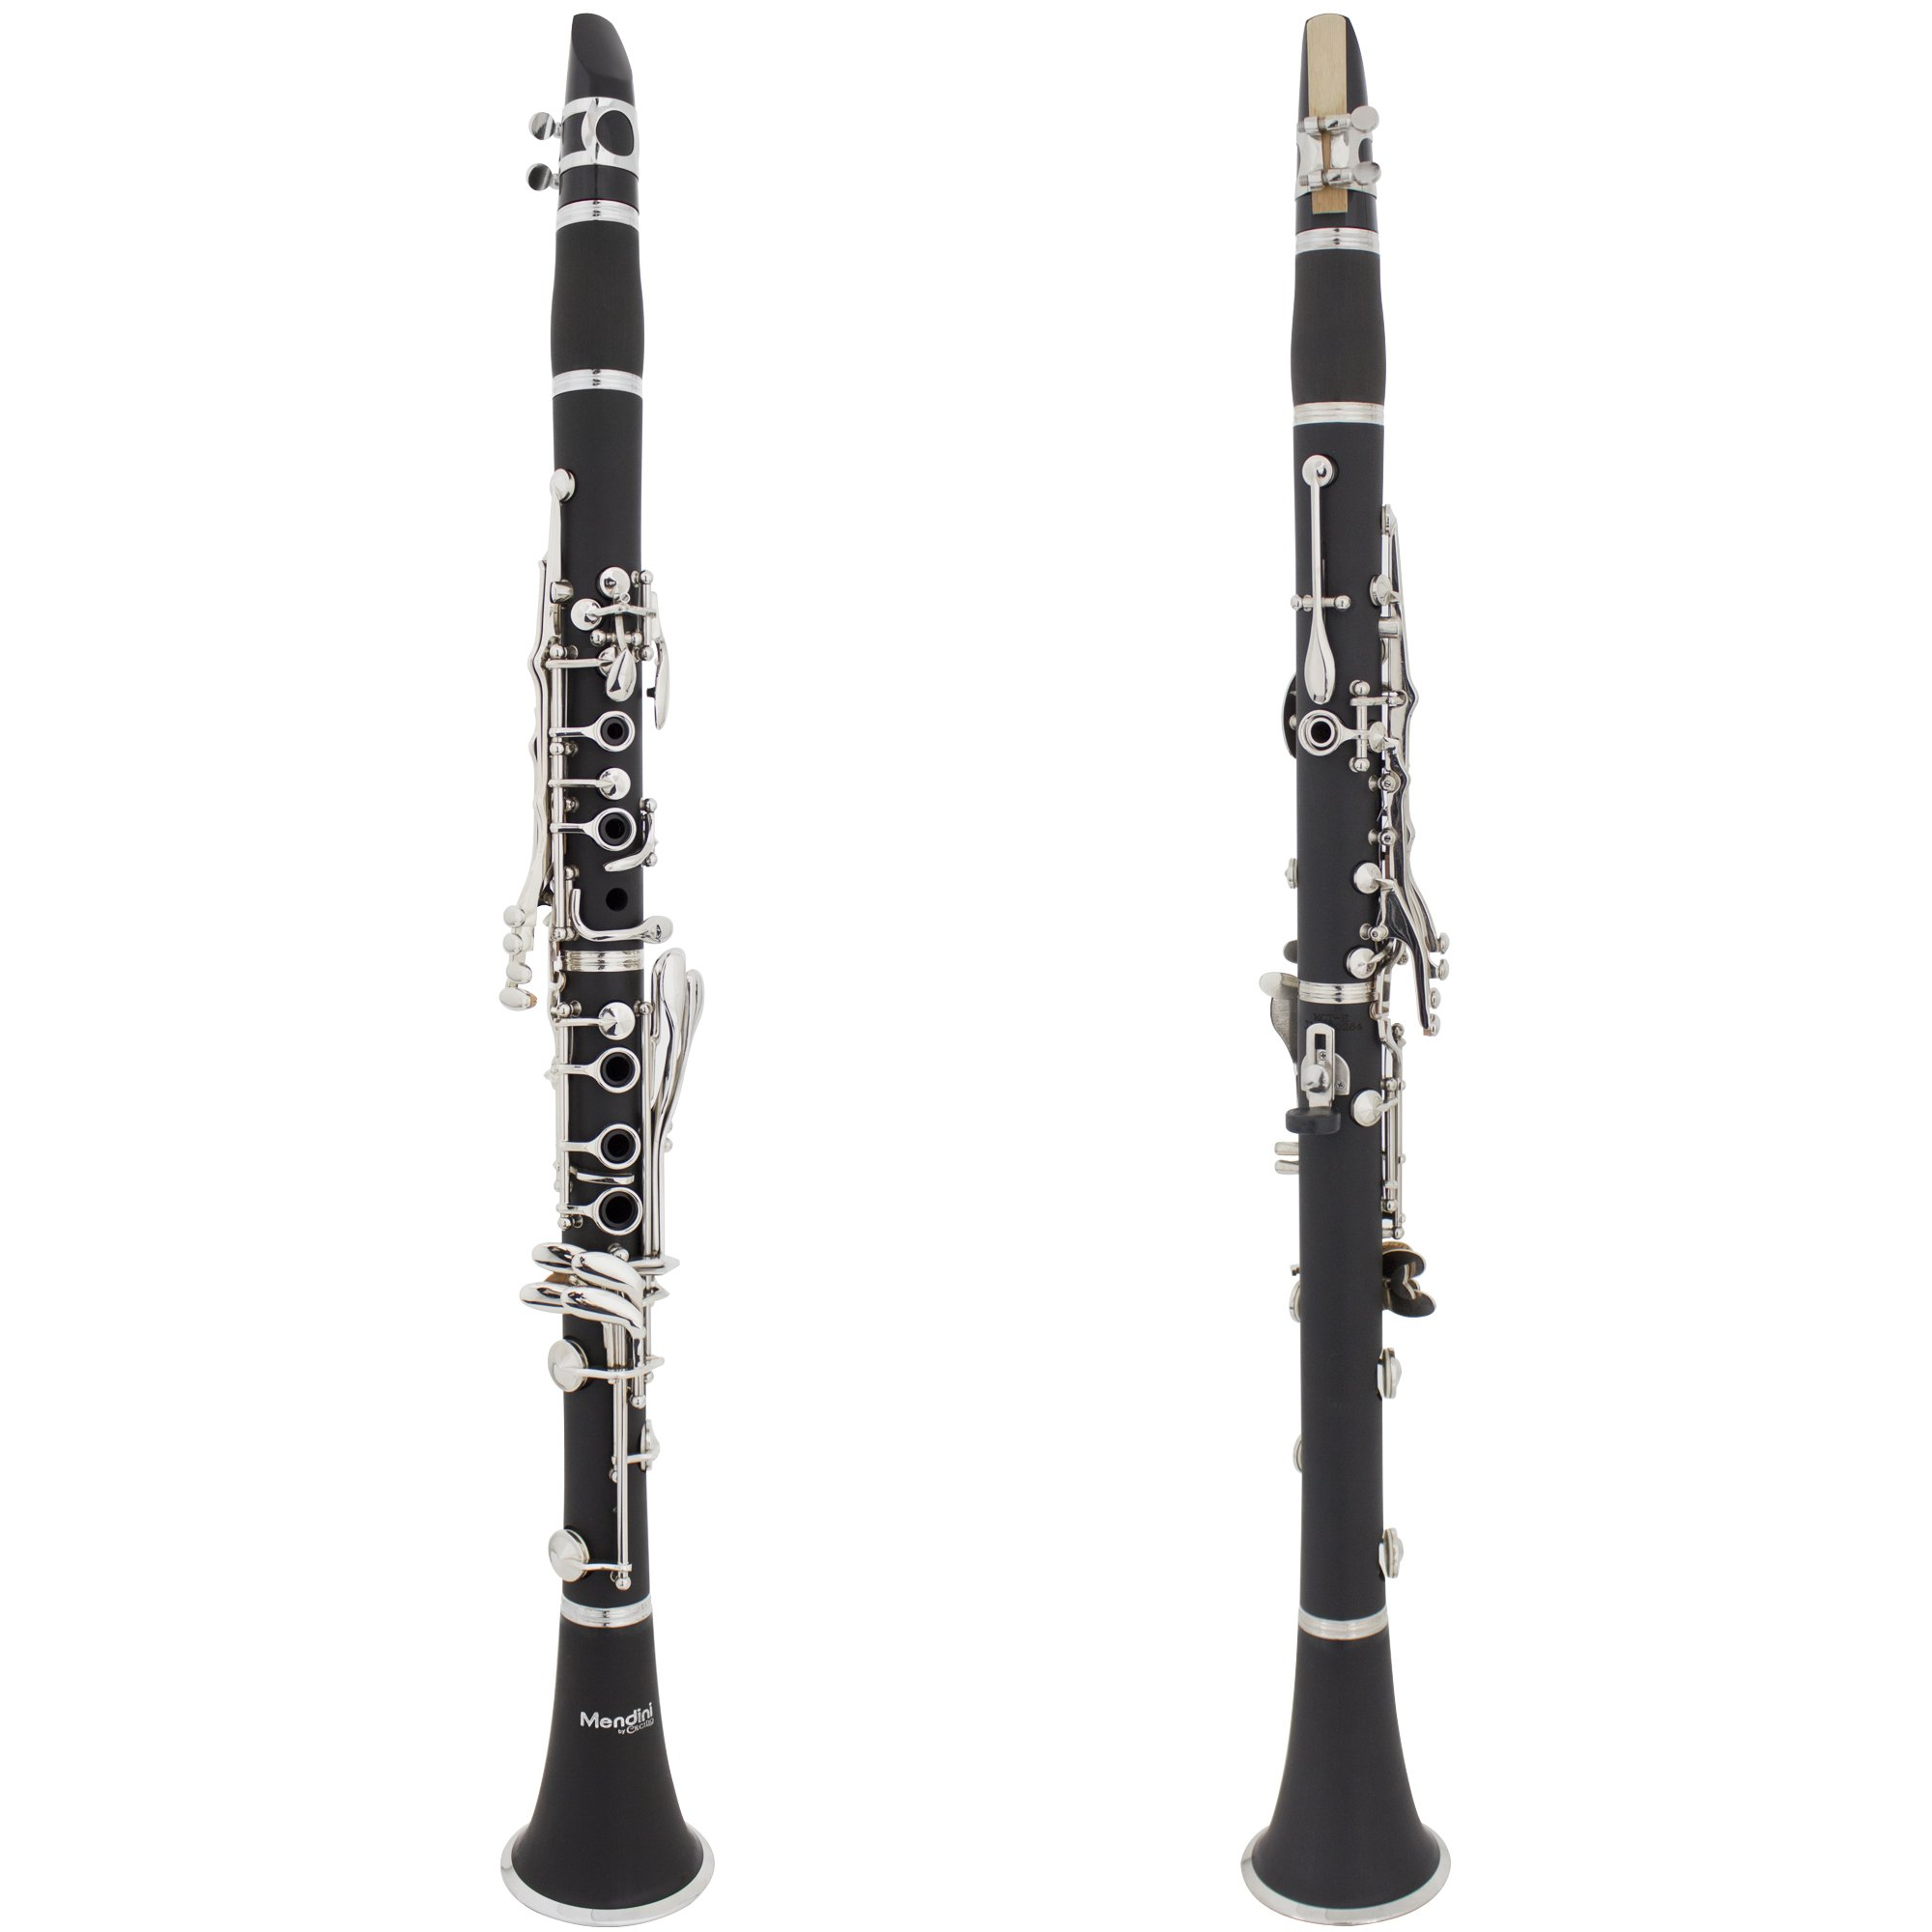 Mendini by Cecilio B Flat Clarinet with 2 Barrels, Case, Stand, Book, 10 Reeds, Mouthpiece and Warranty-Black Ebonite MCT-JE2+SD+PB by Mendini by Cecilio (Image #2)